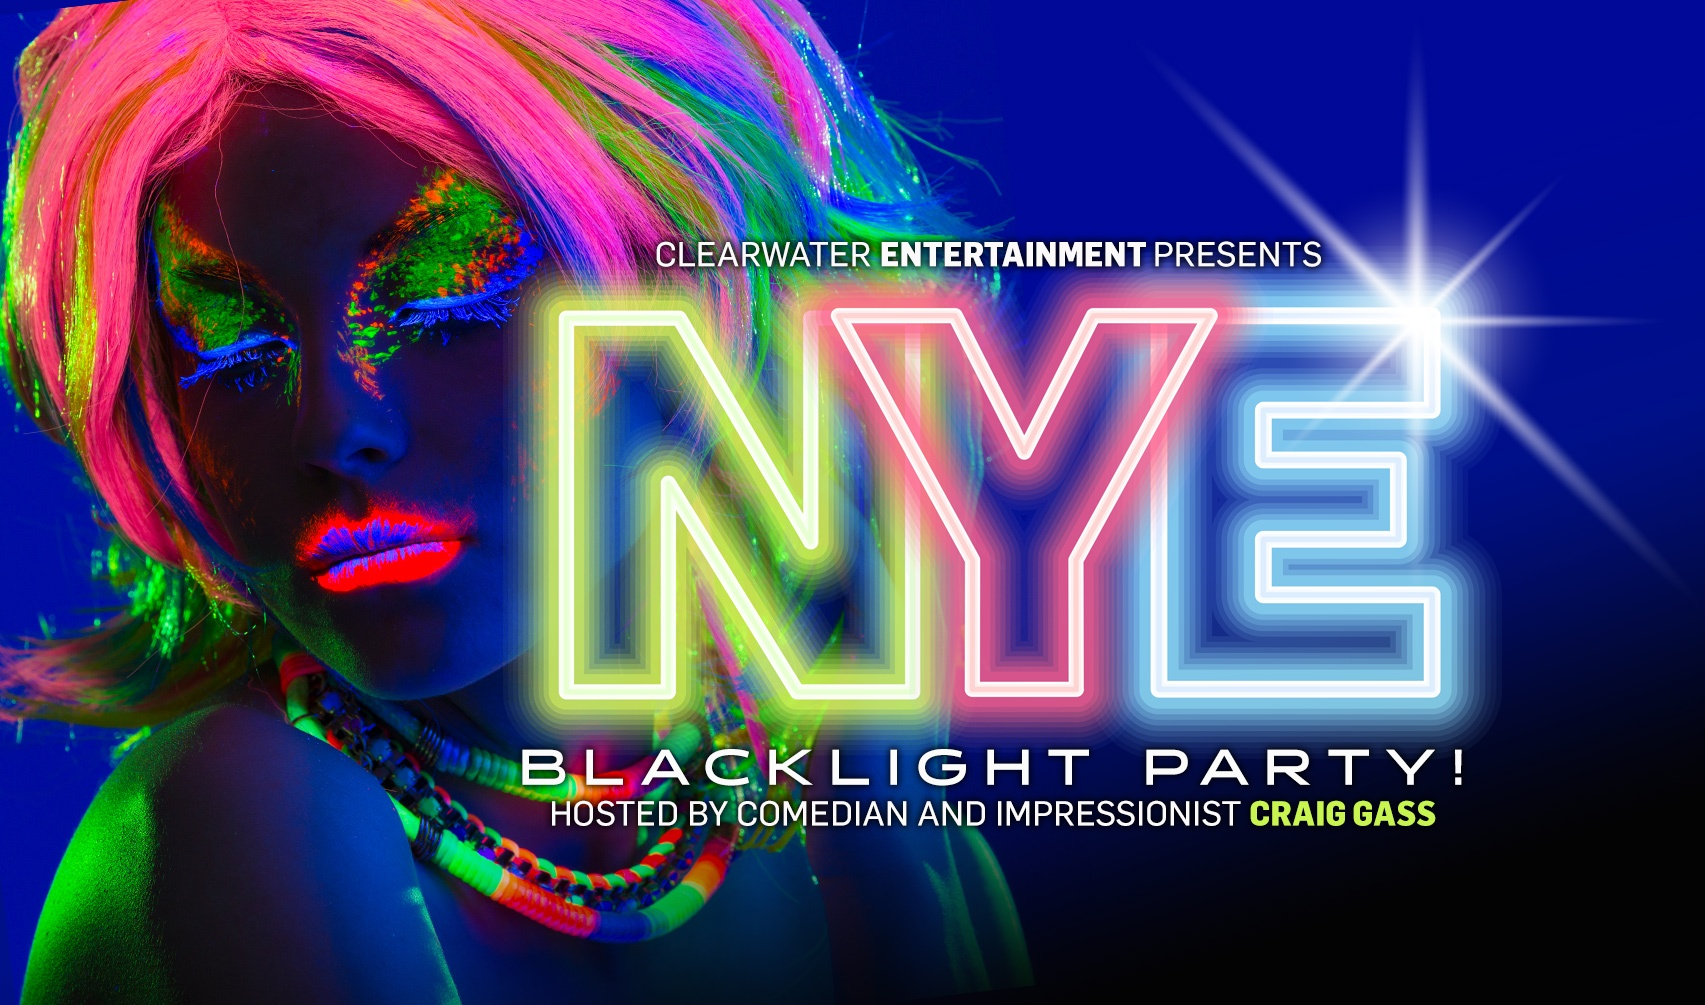 new years eve black light party hosted by craig gass